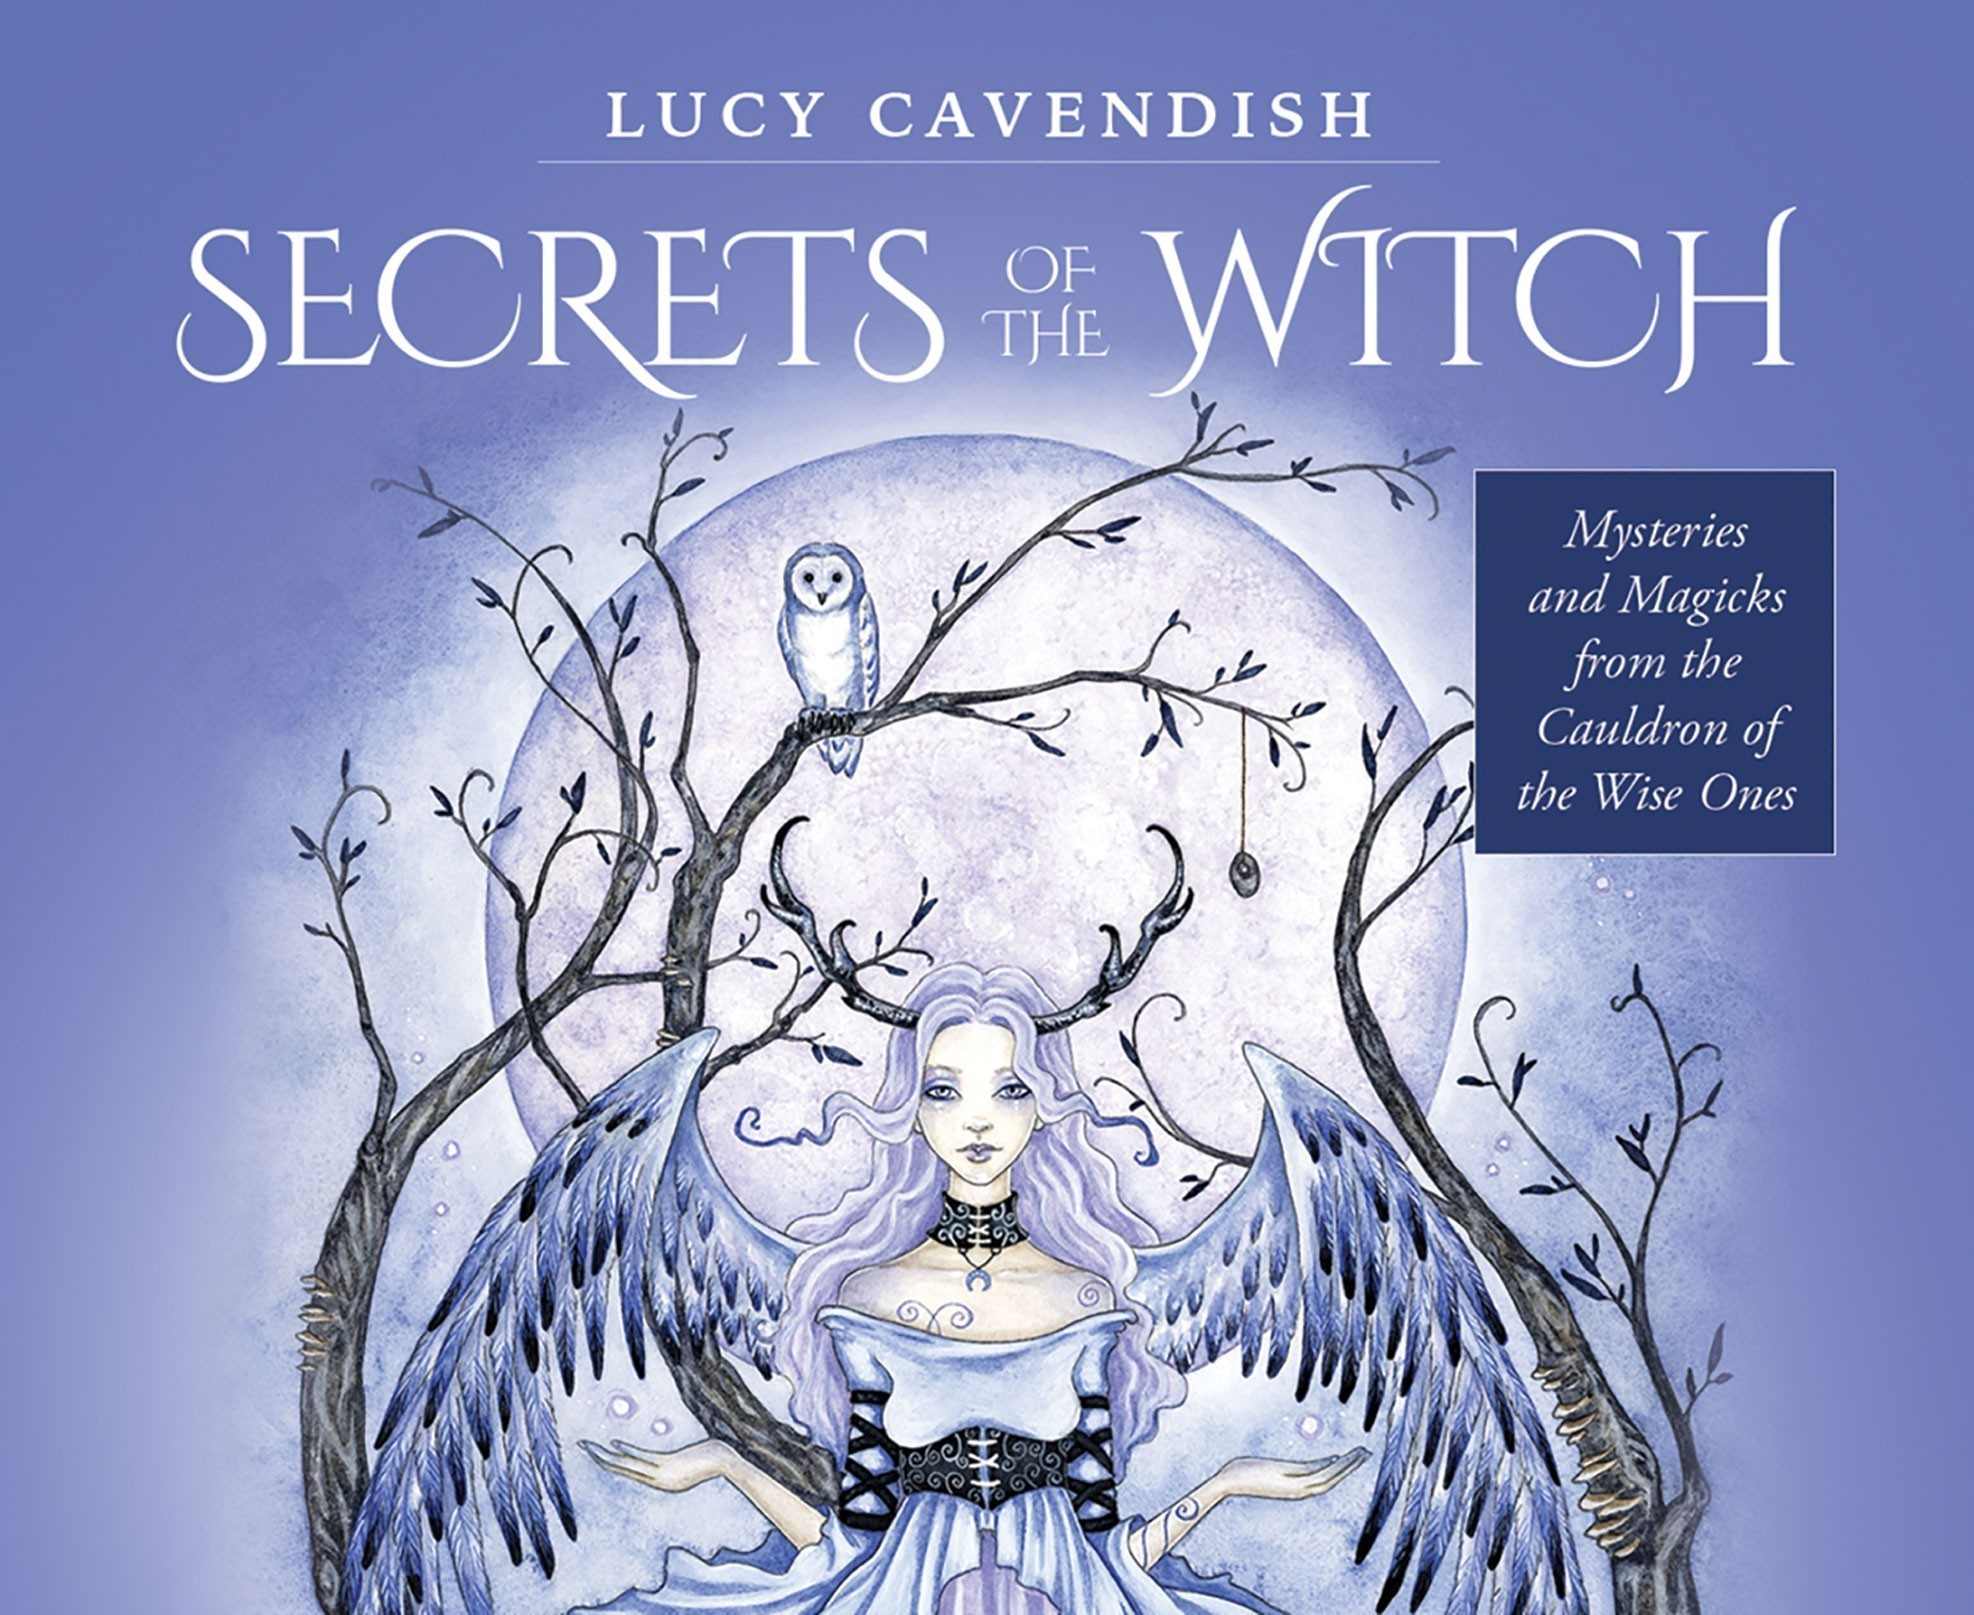 Secrets of the Witch Oracle Cards: Mysteries and Magicks from the Cauldron of the Wise Ones